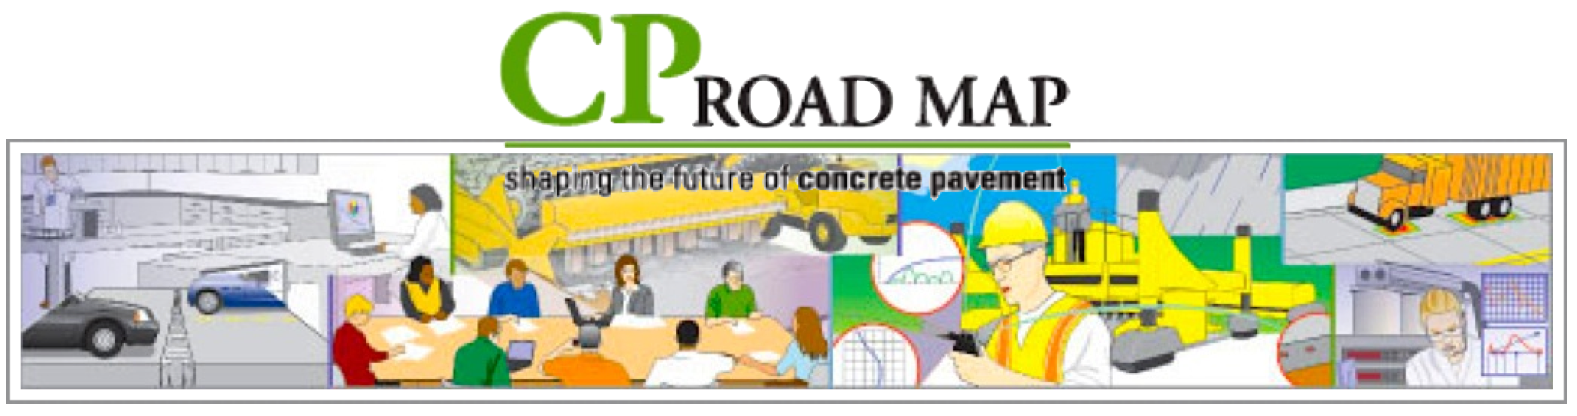 NCC E-News JULY 2017, in Asso. with the CP Road Map Program